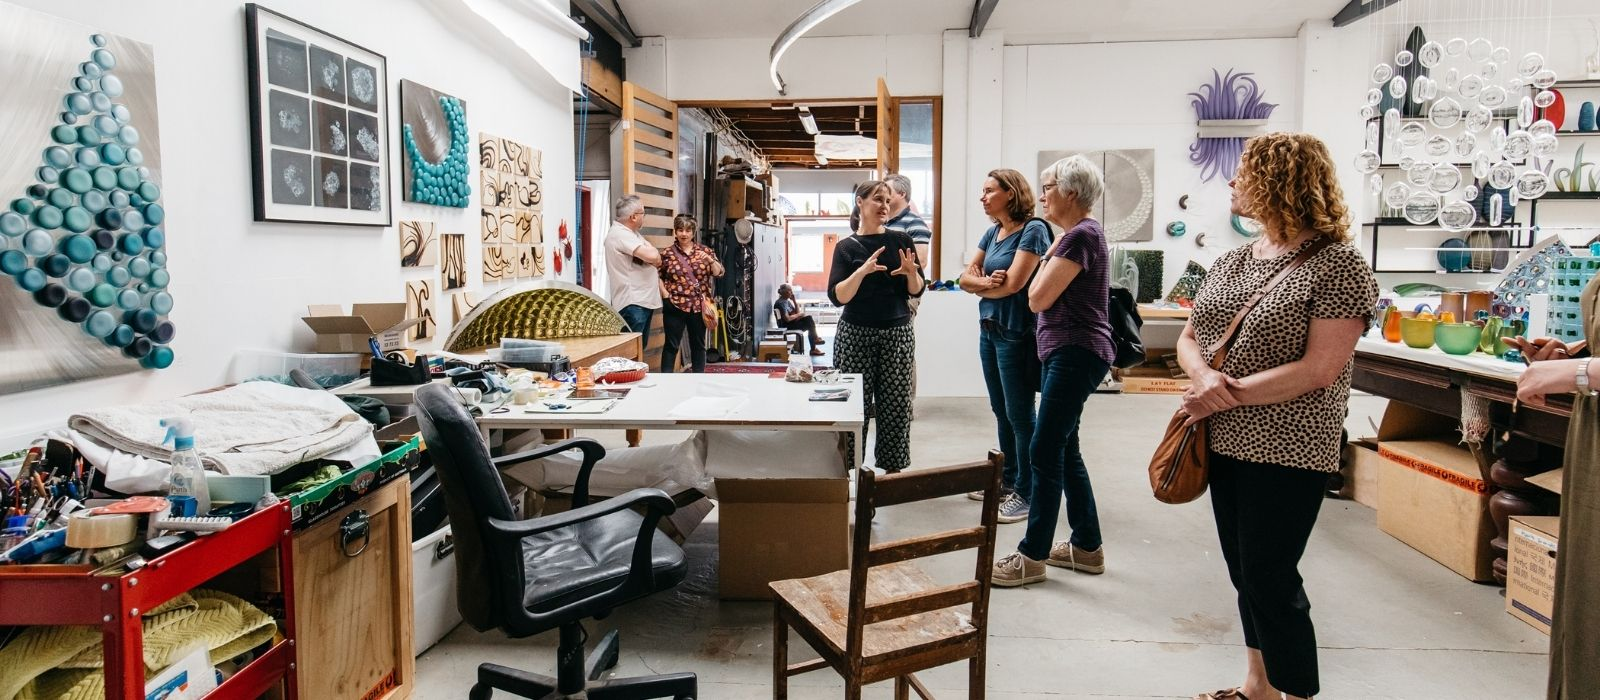 2021 Open studio call out